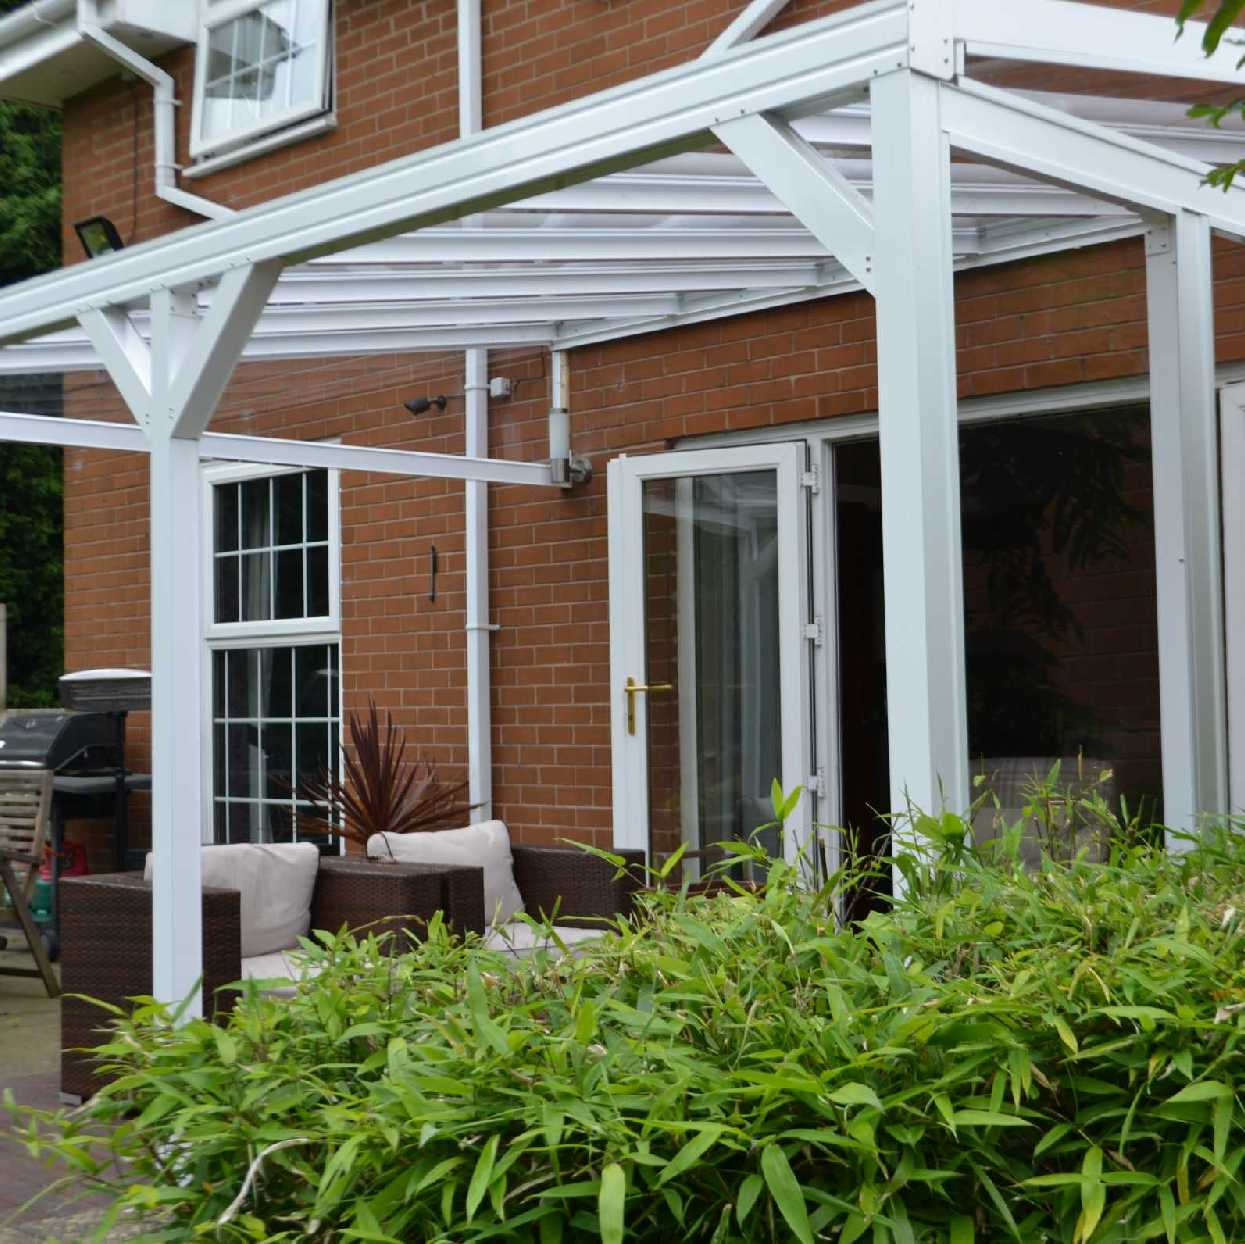 Omega Smart White Lean-To Canopy with 6mm Glass Clear Plate Polycarbonate Glazing - 8.4m (W) x 2.0m (P), (4) Supporting Posts from Omega Build